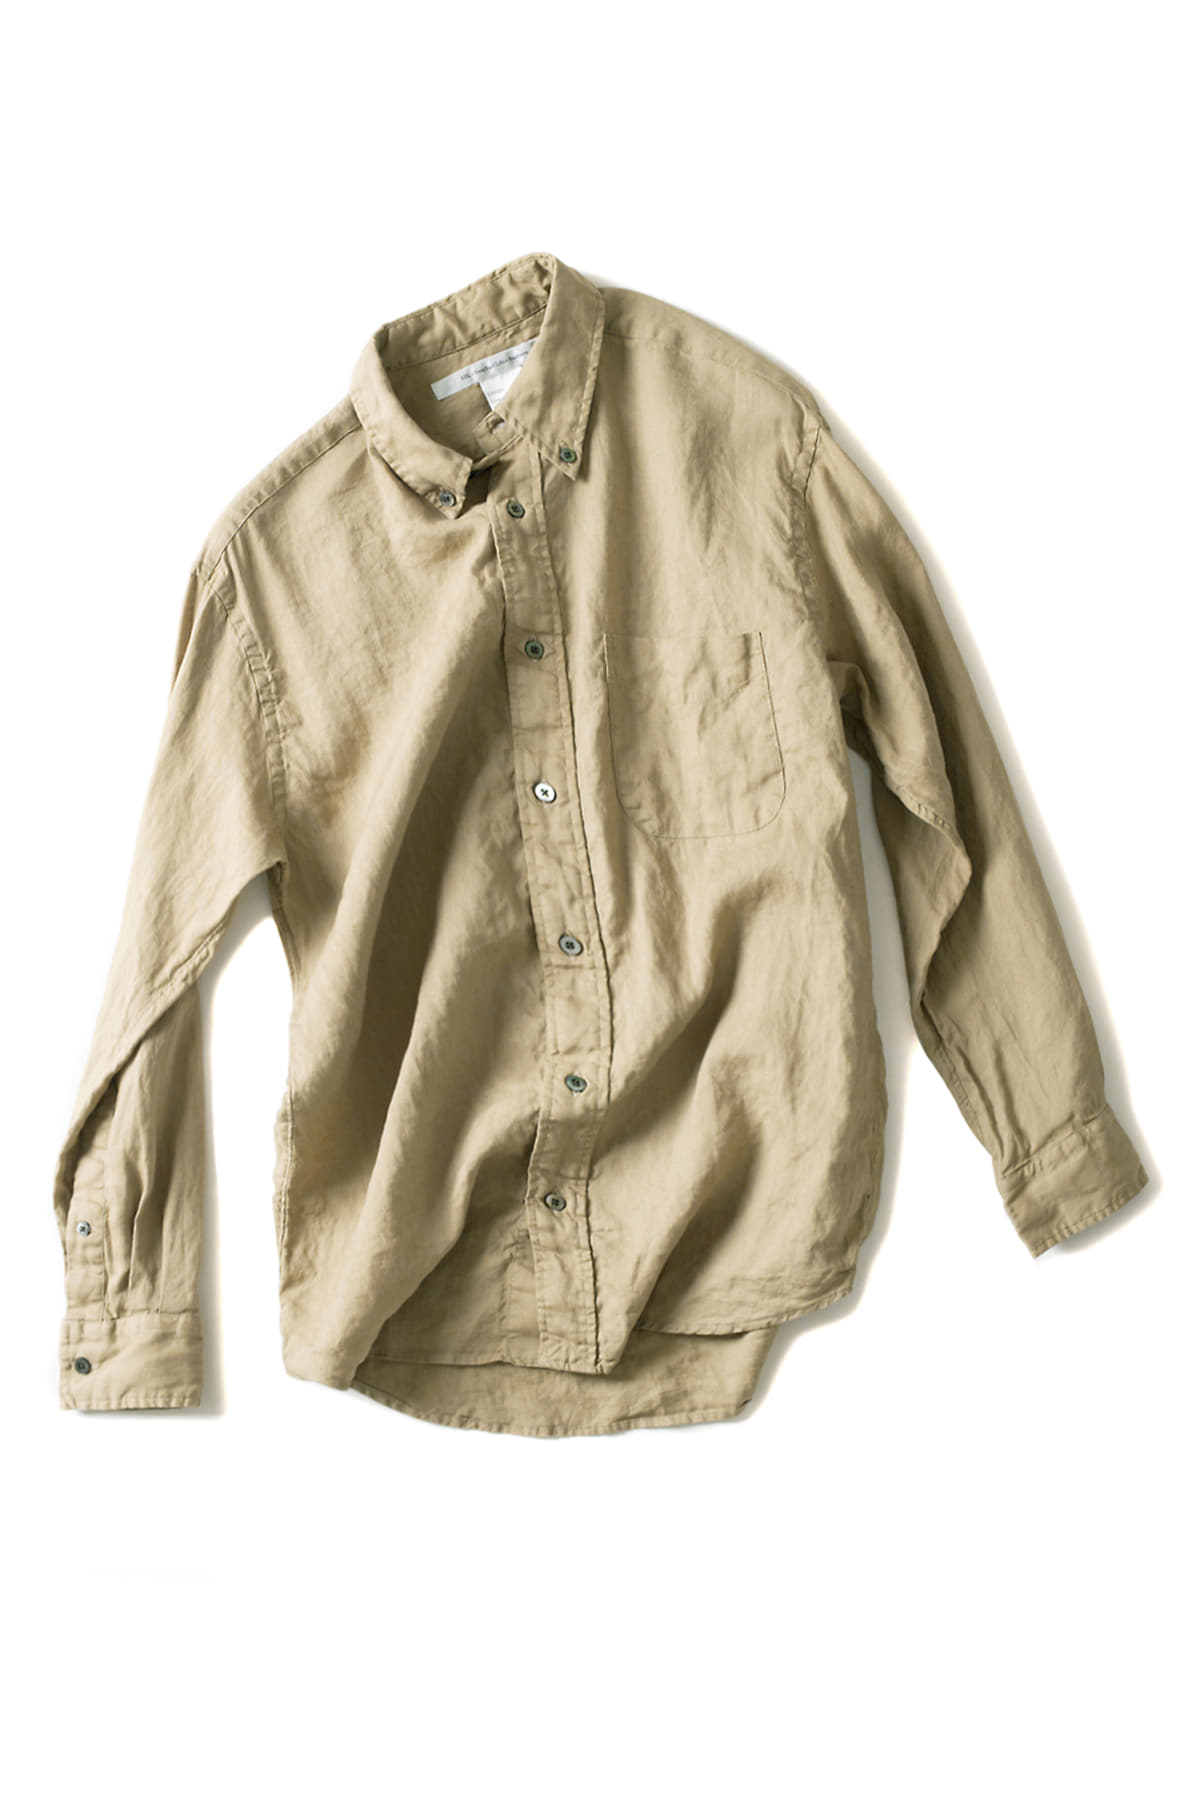 EEL : Lincoln Shirts (Beige)